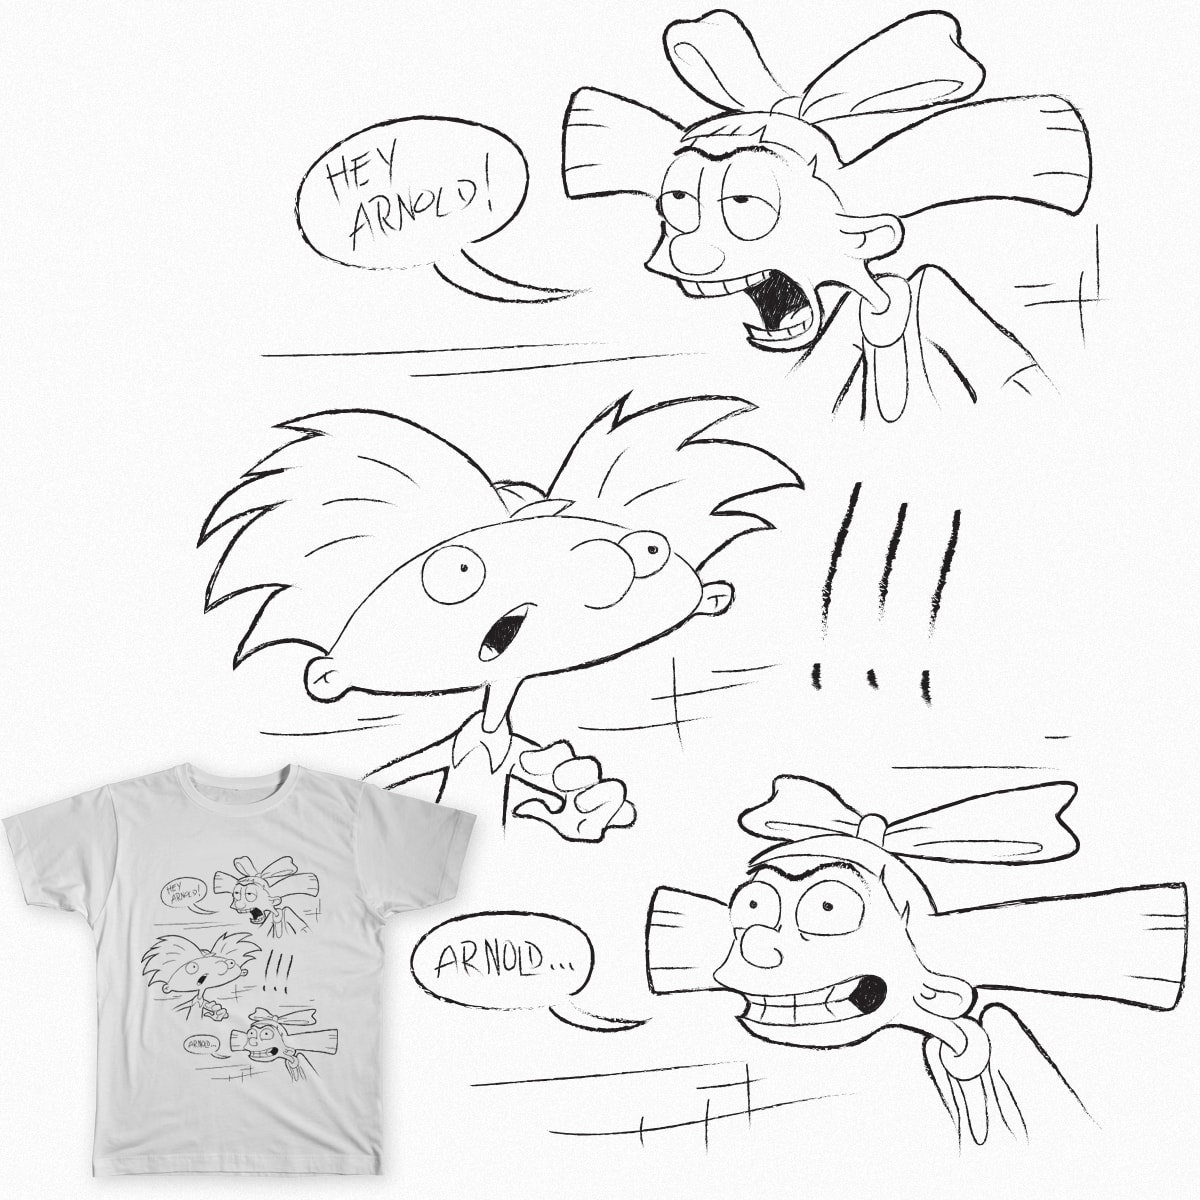 Hey Arnold!!!  by ellocoart on Threadless